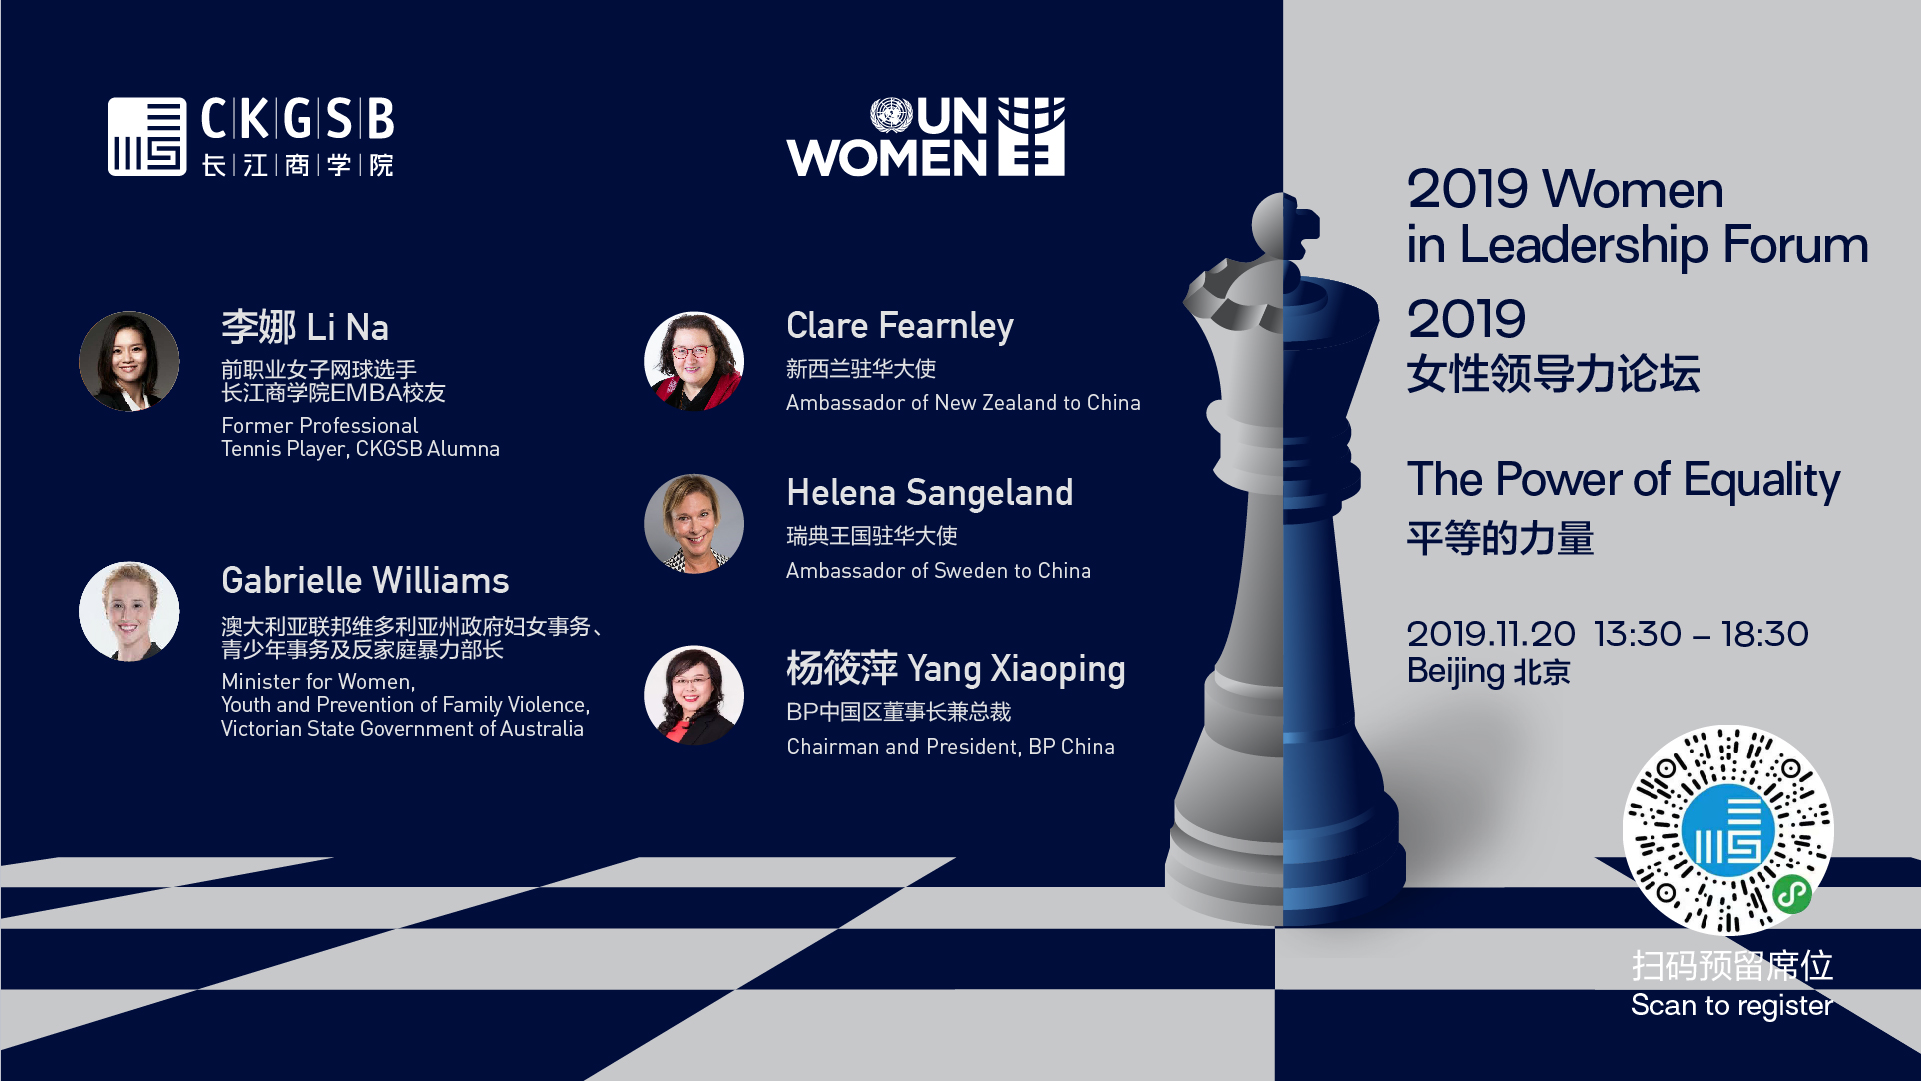 2019 Women in Leadership Forum – The Power of Equality 2019 女性领导力论坛 – 平等的力量